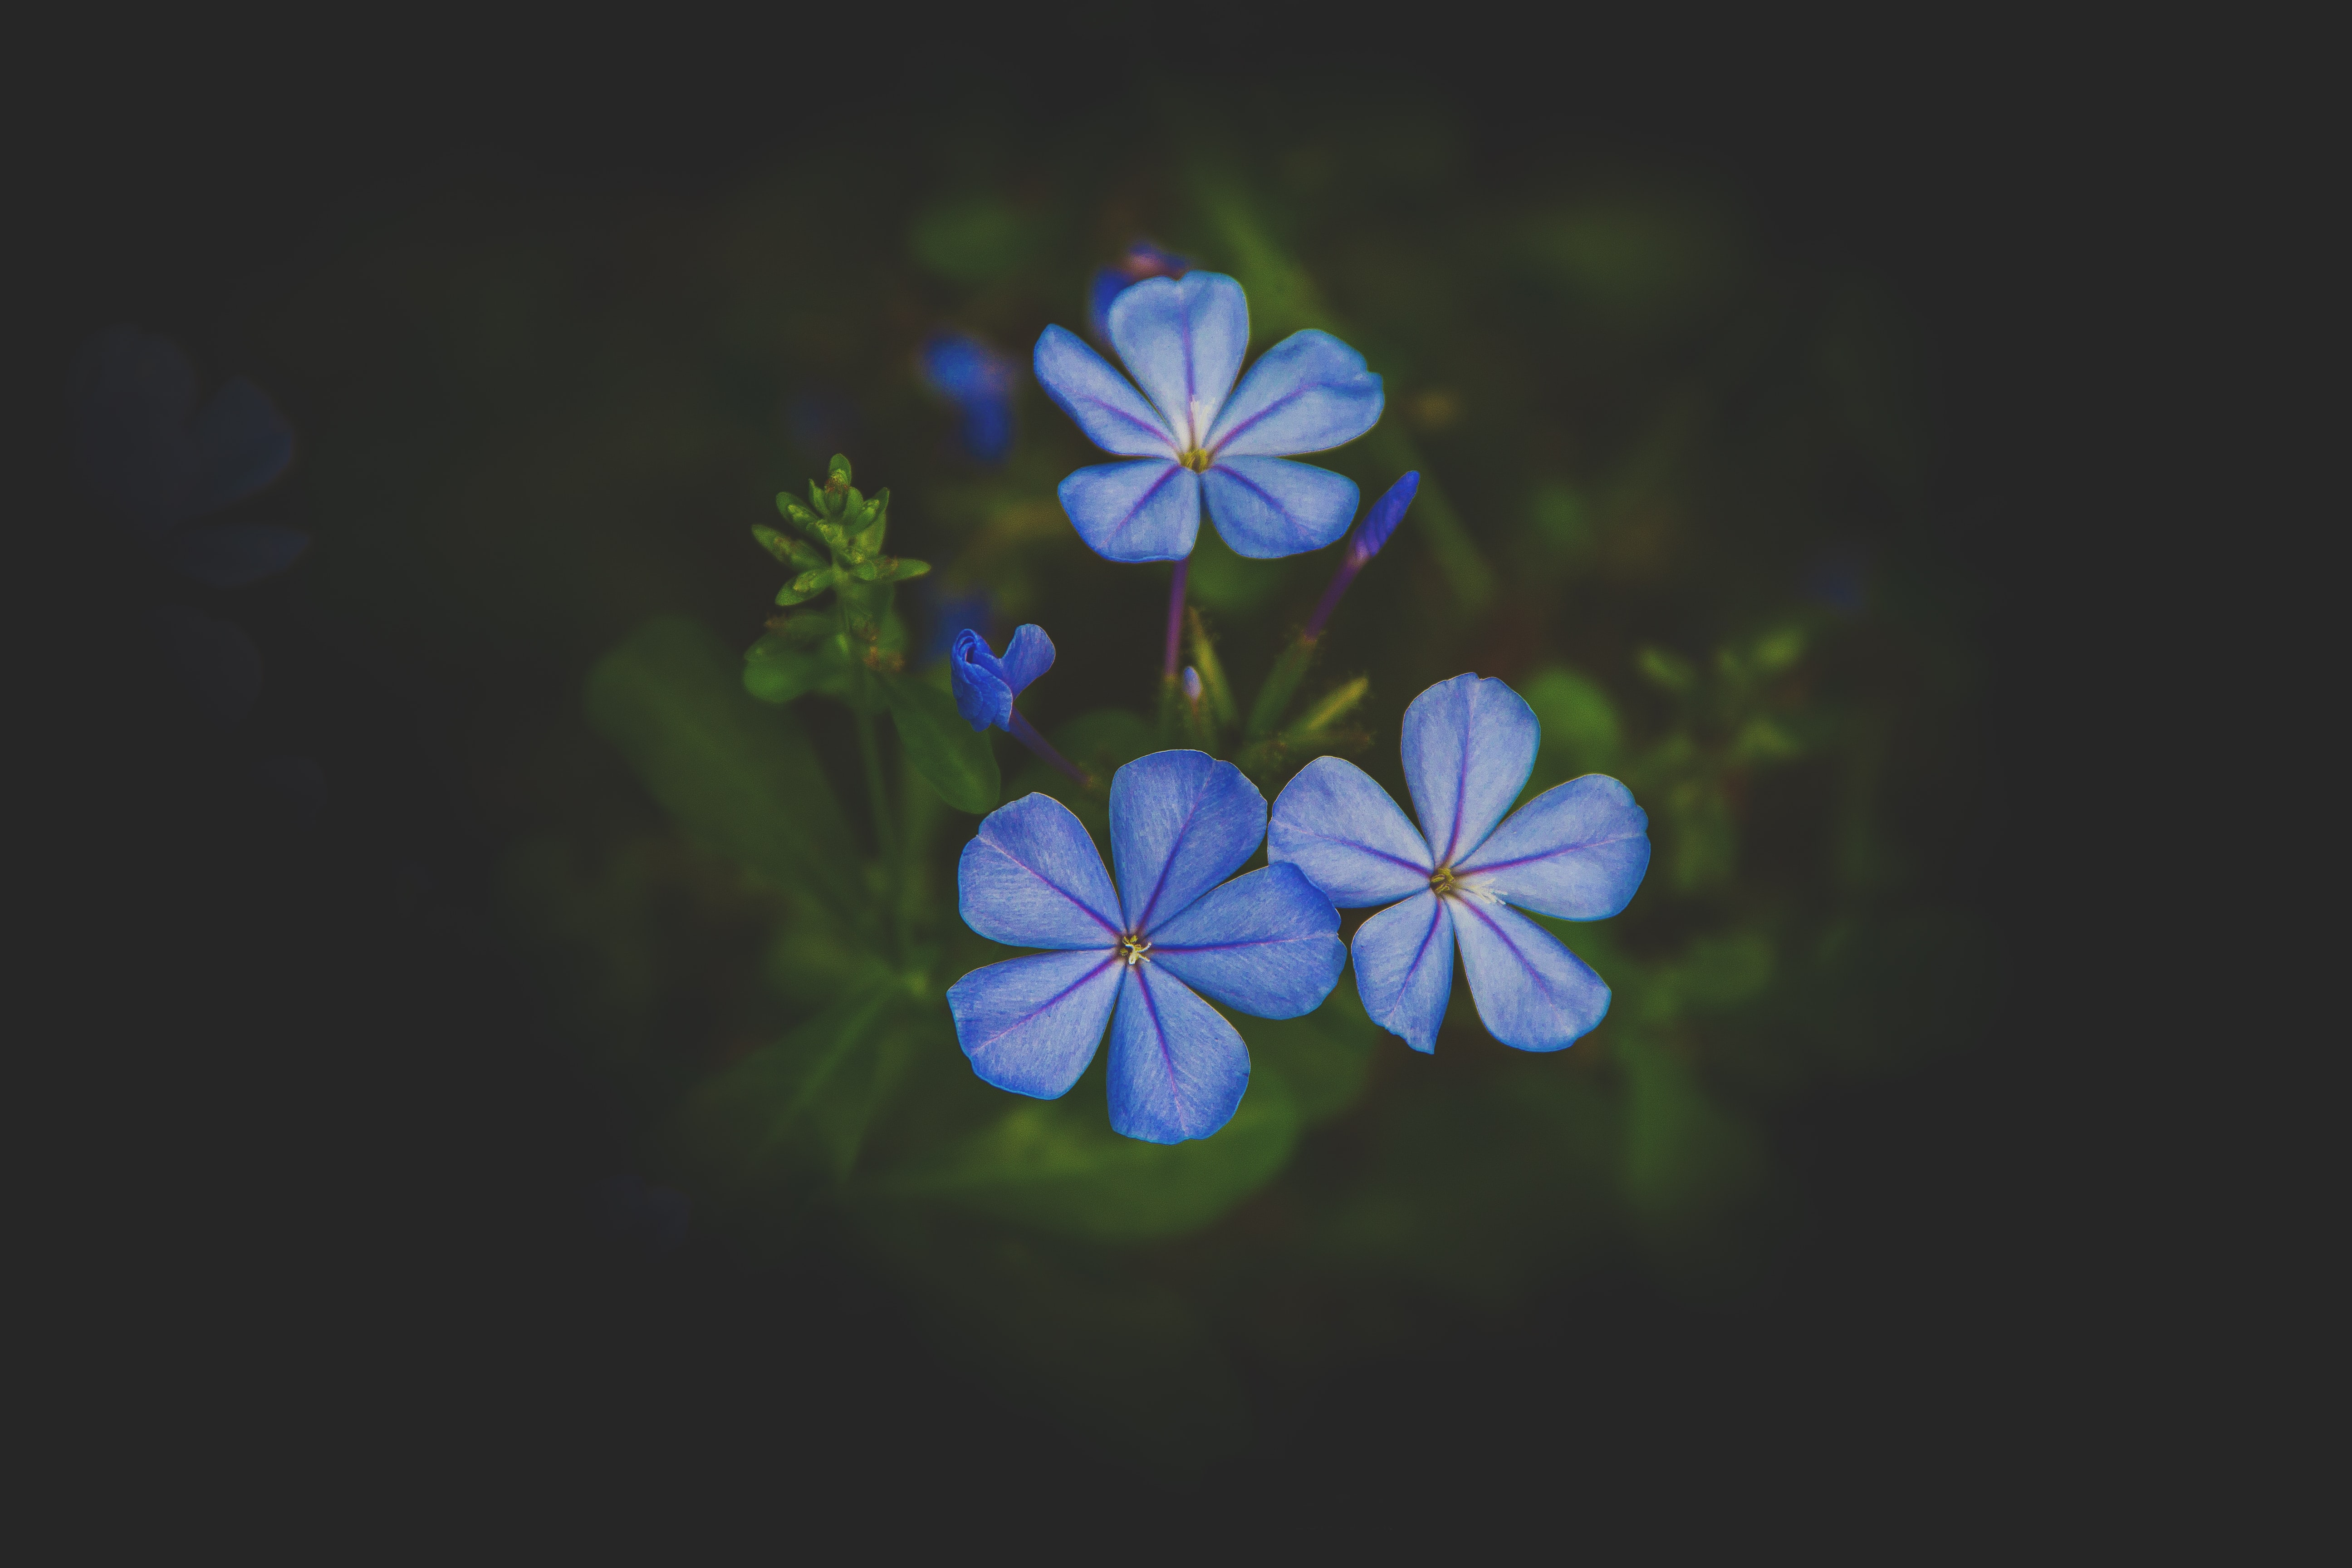 selective focus photo of three white-and-blue petaled flowers